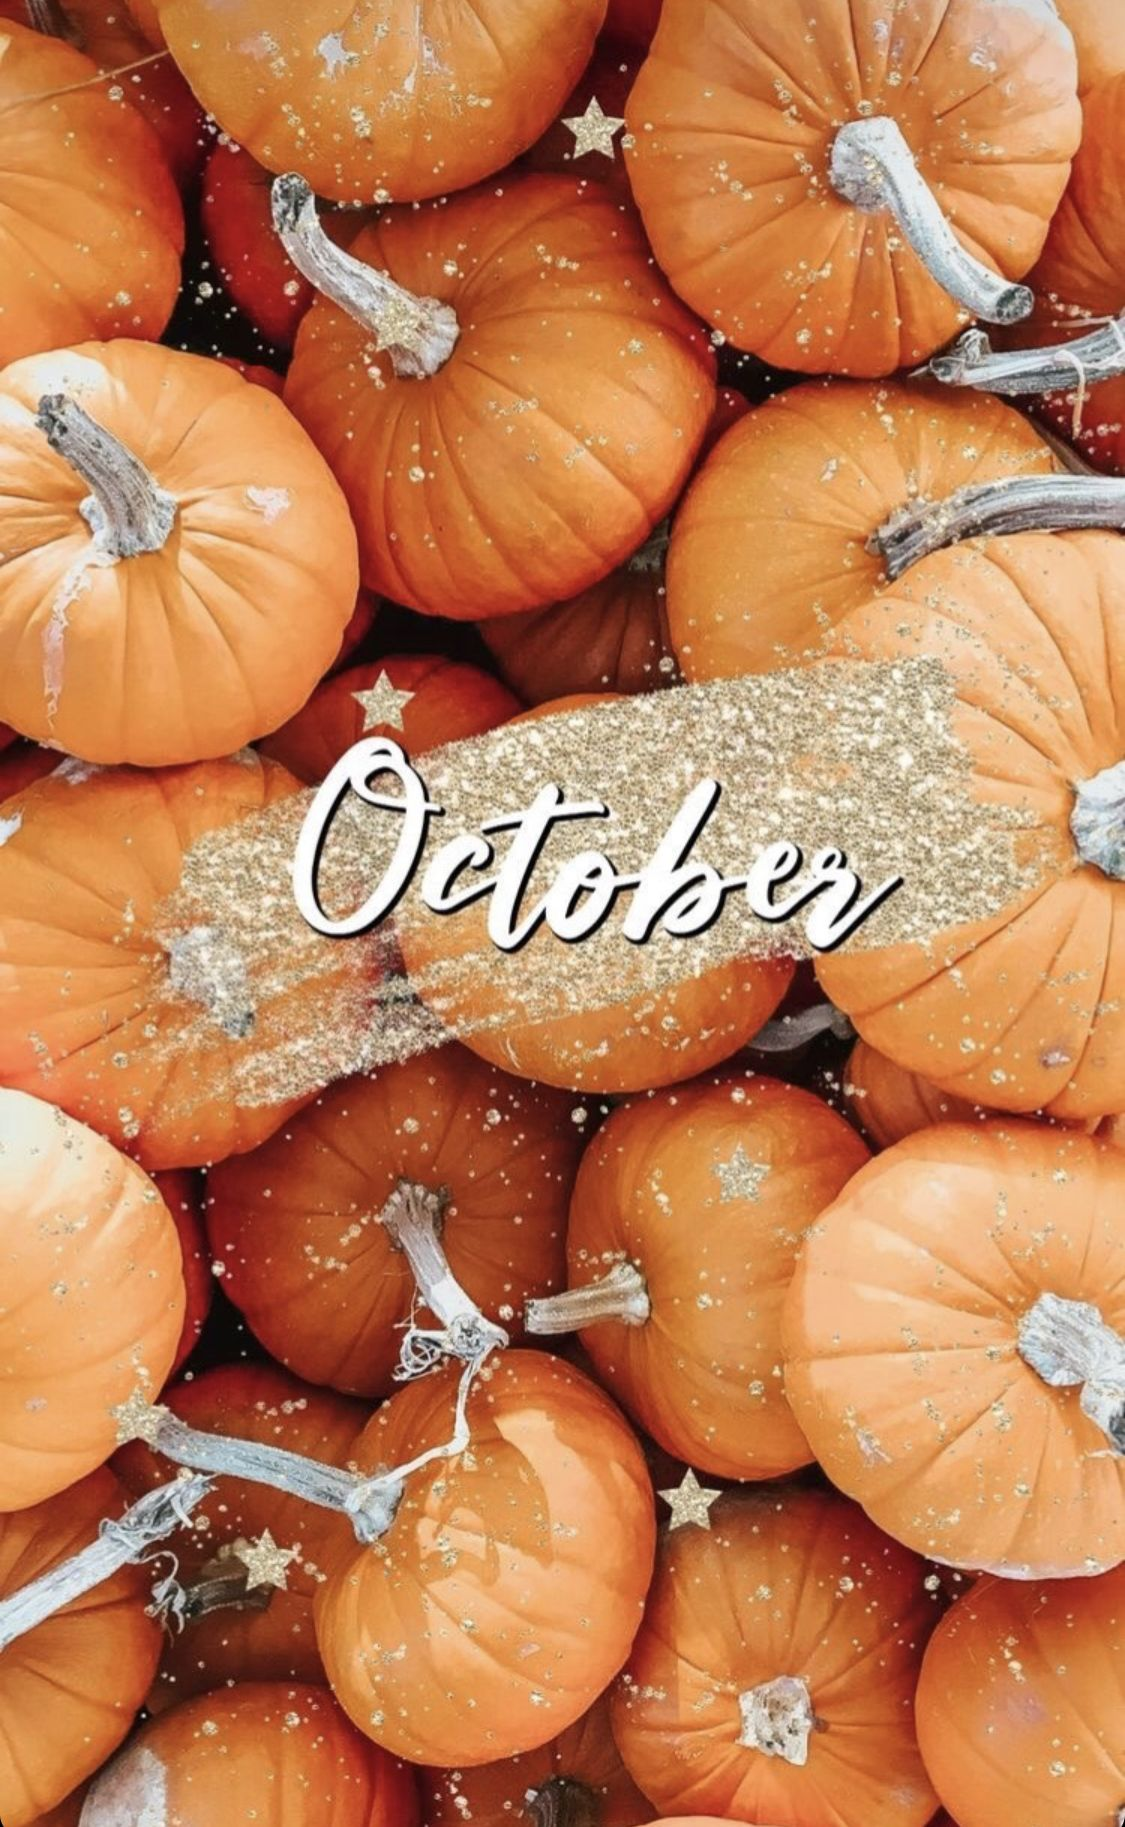 October Aesthetic Wallpapers posted by Sarah Thompson